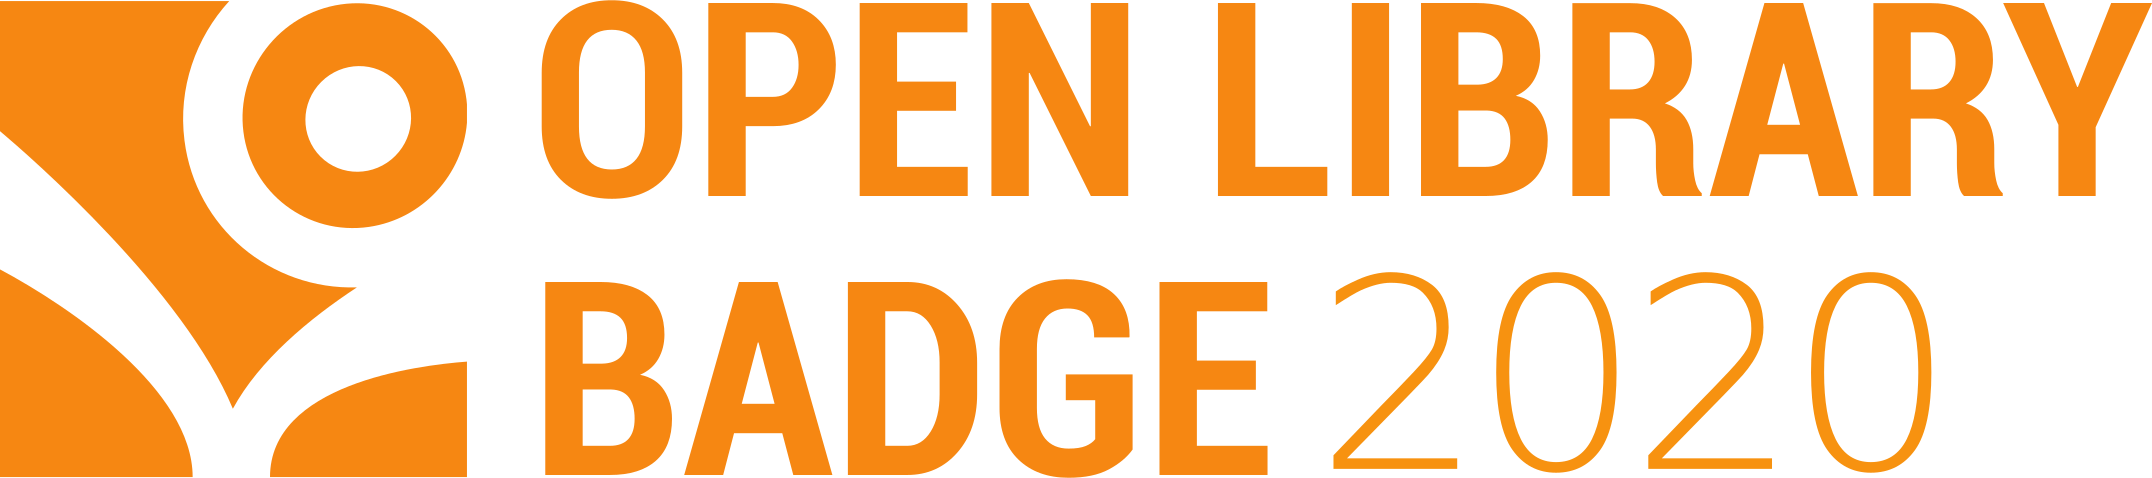 Open Library Badge 2020